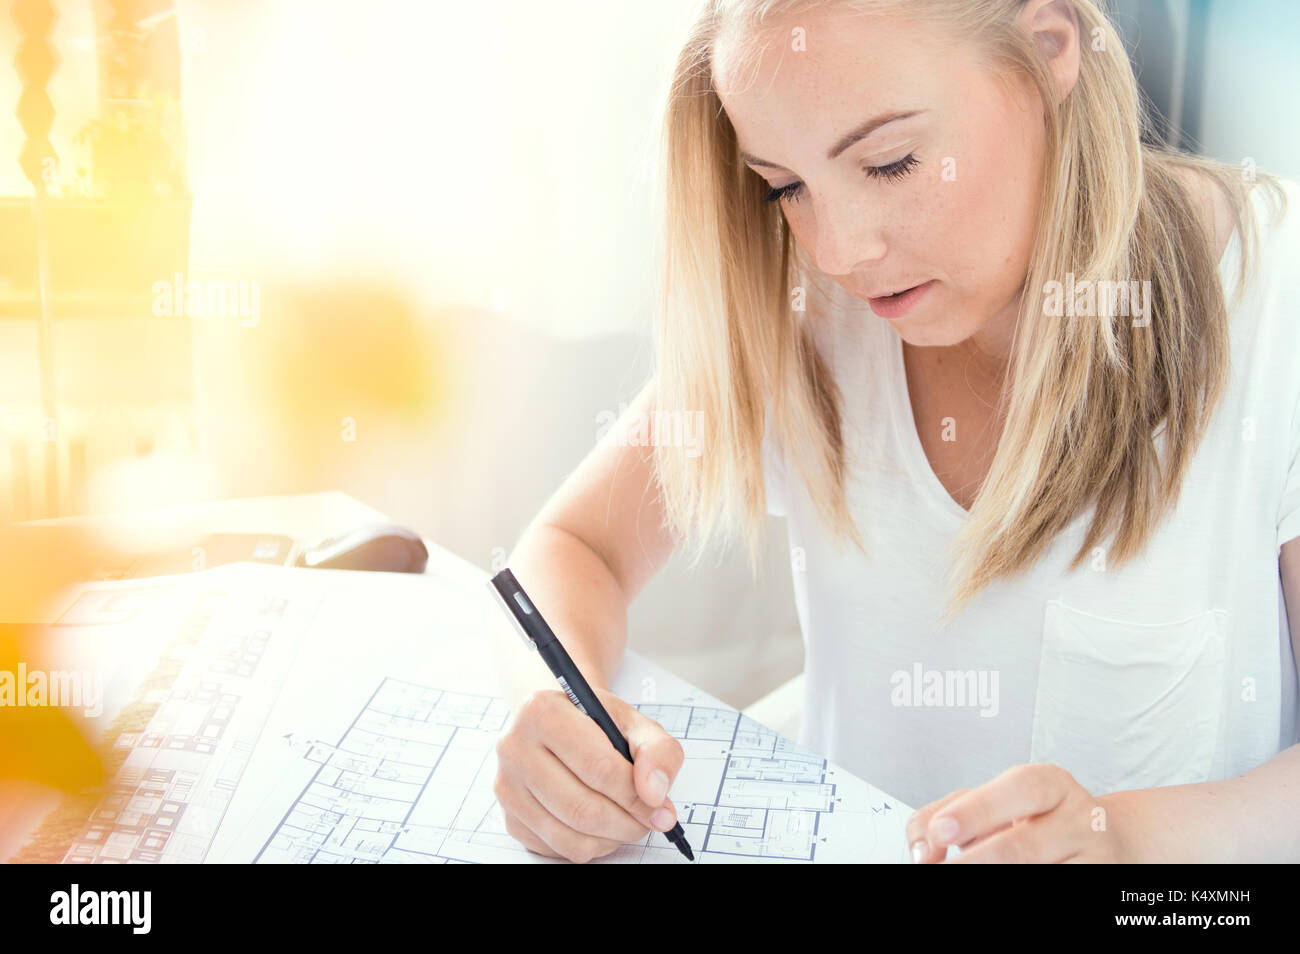 Young blonde architect is making professional architectural plan - Stock Image